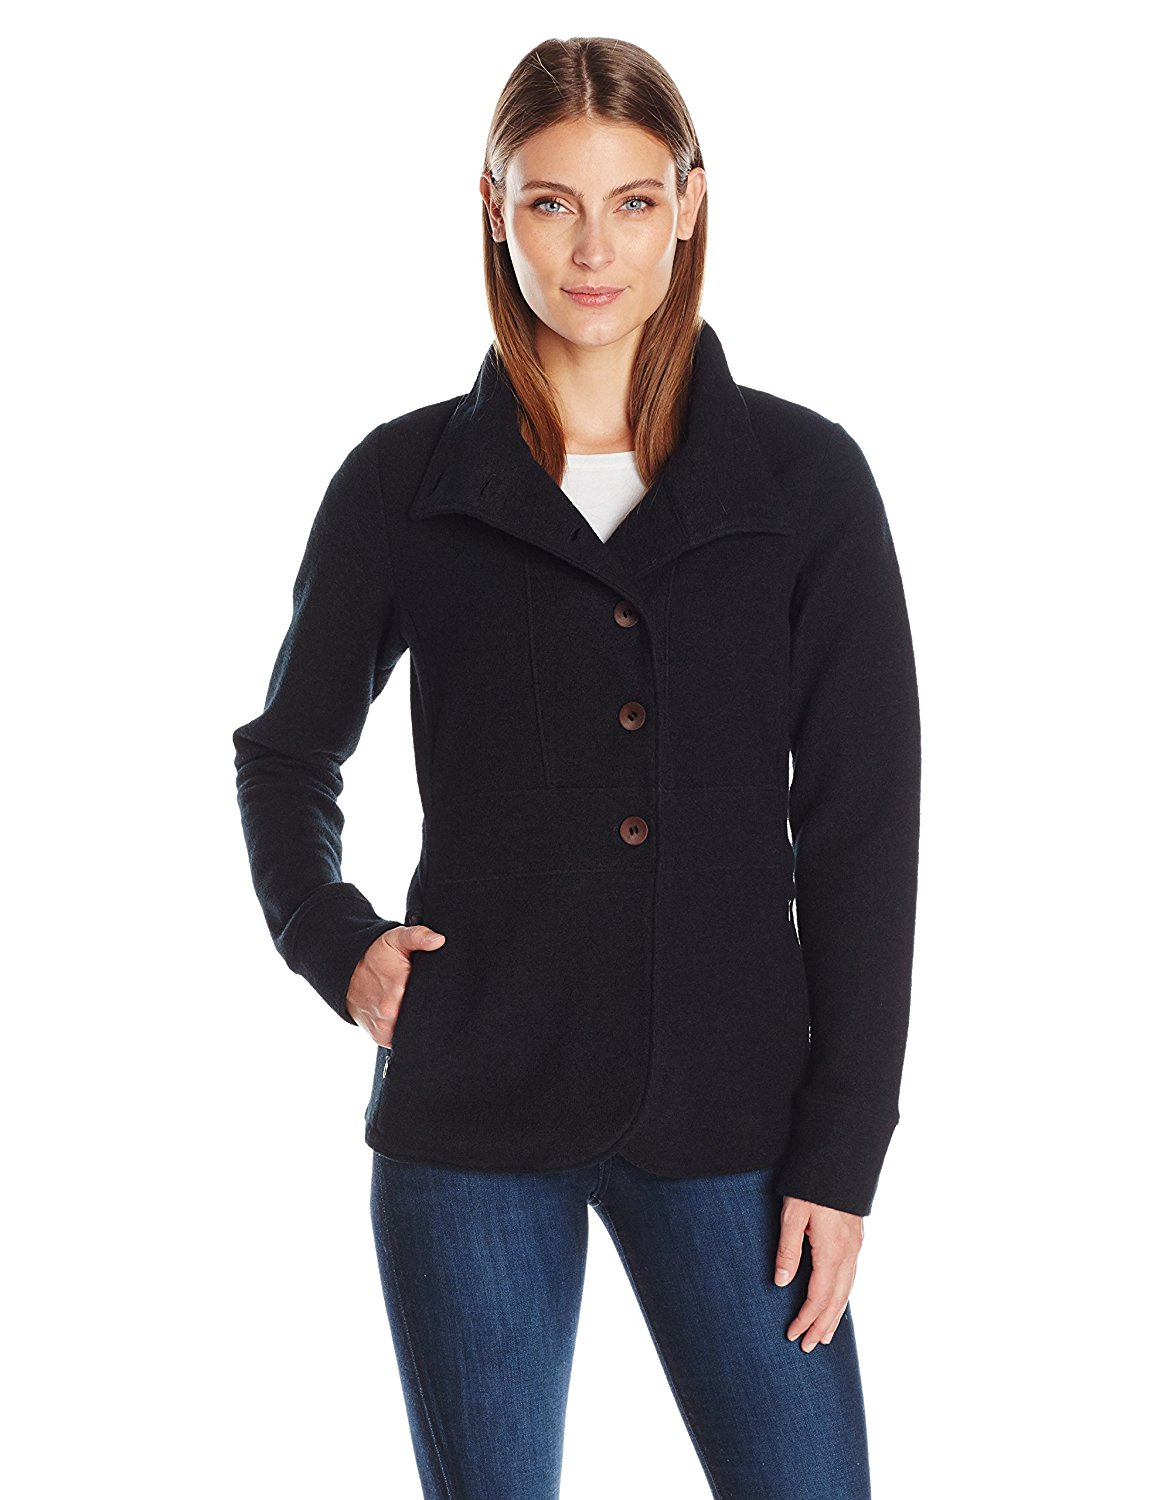 Ibex Outdoor Clothing Reese Cardigan